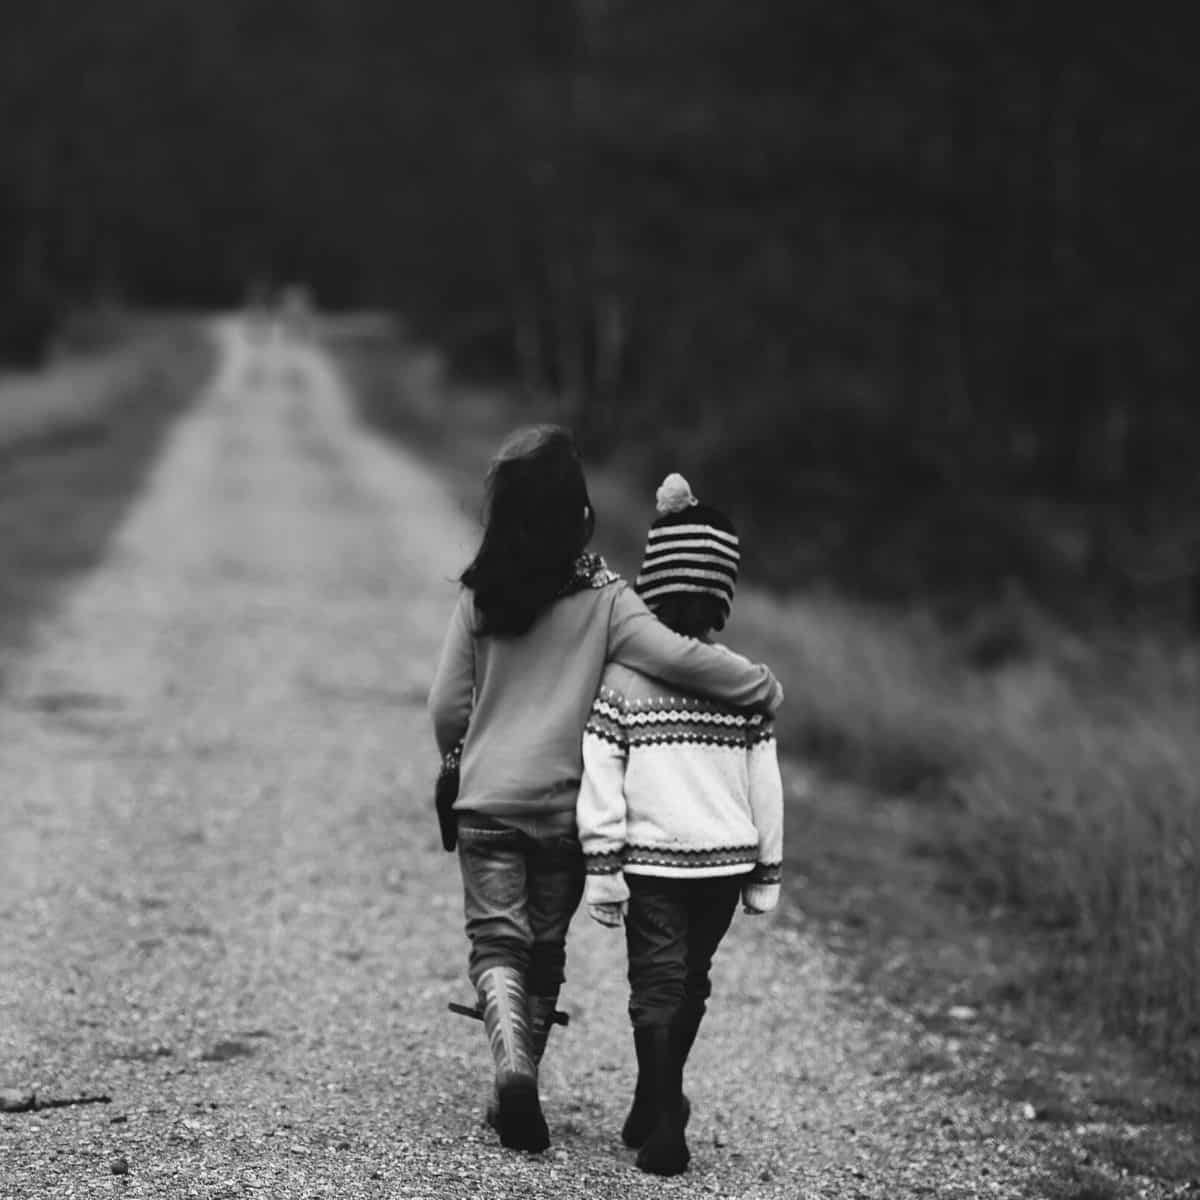 black and white photo of young girl putting her arm around a young boy while they walk down a dirt road